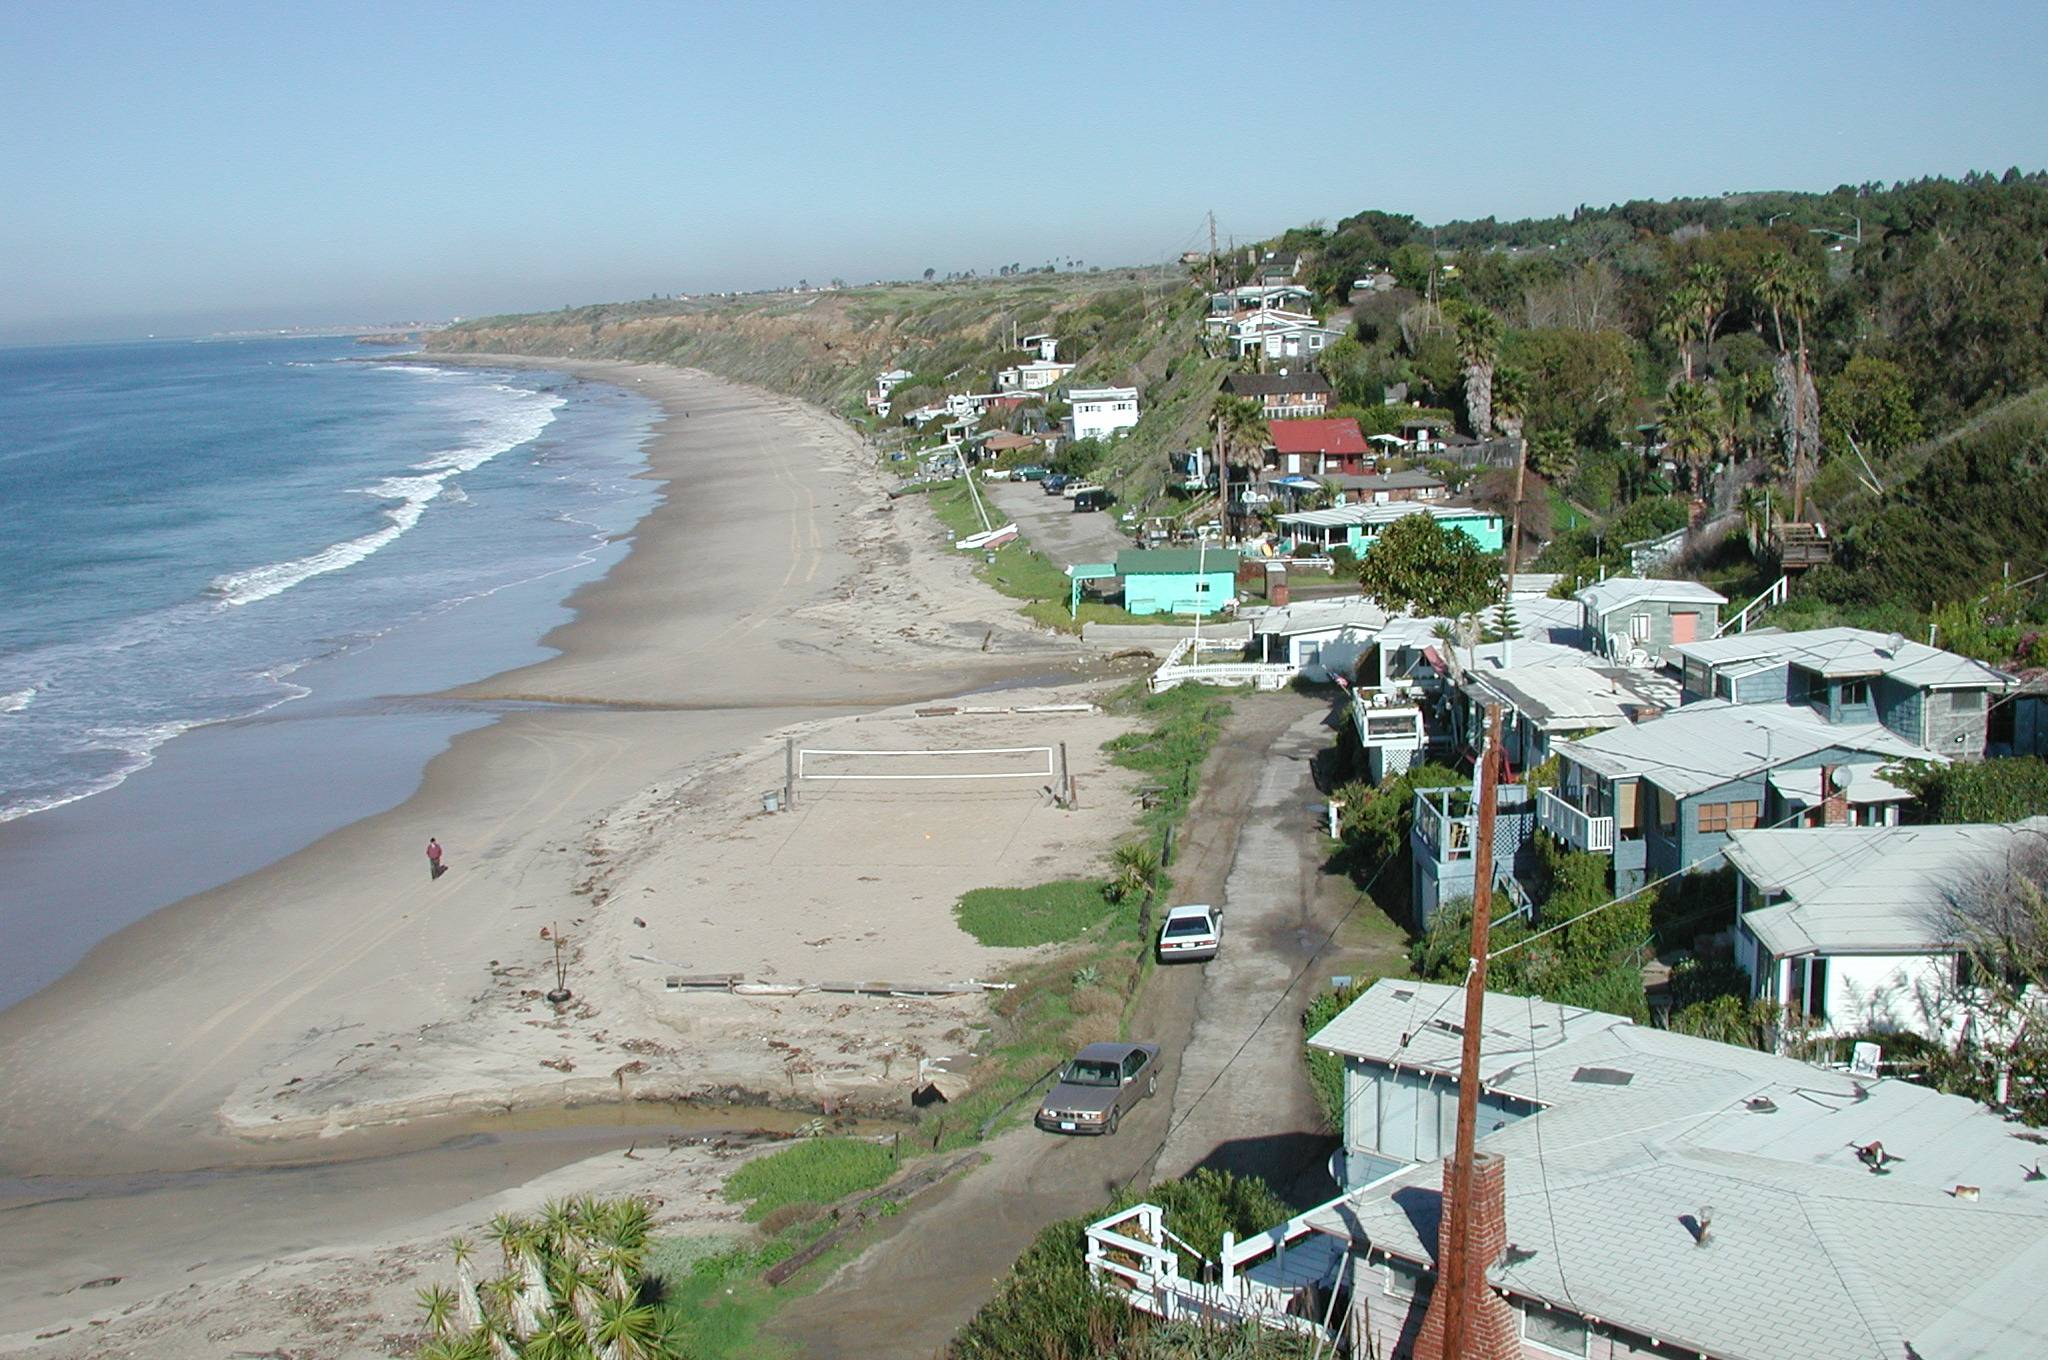 The Historic District Crystal Cove State Park